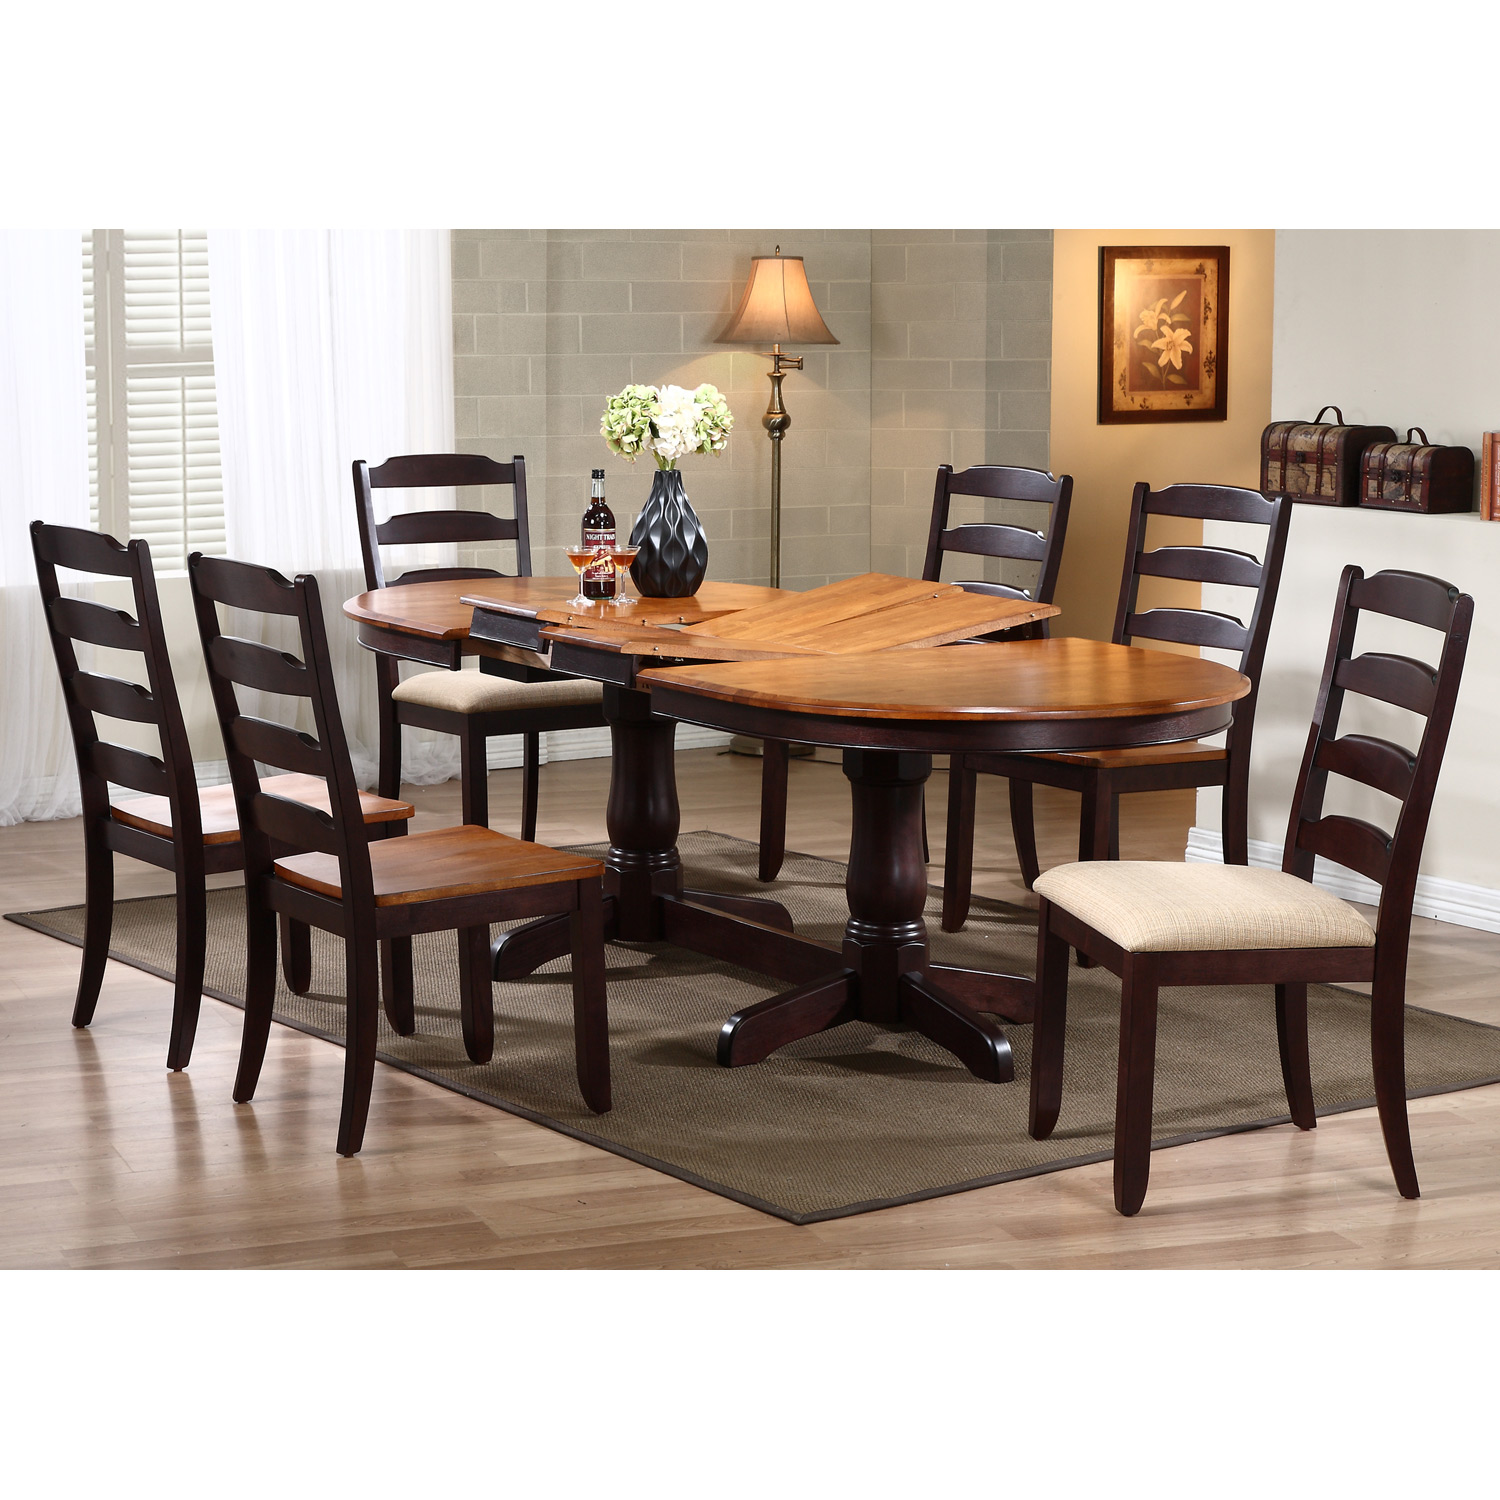 Gatsby 7 Piece Oval Extending Dining Set - Ladder Back Chairs, Mocha ...